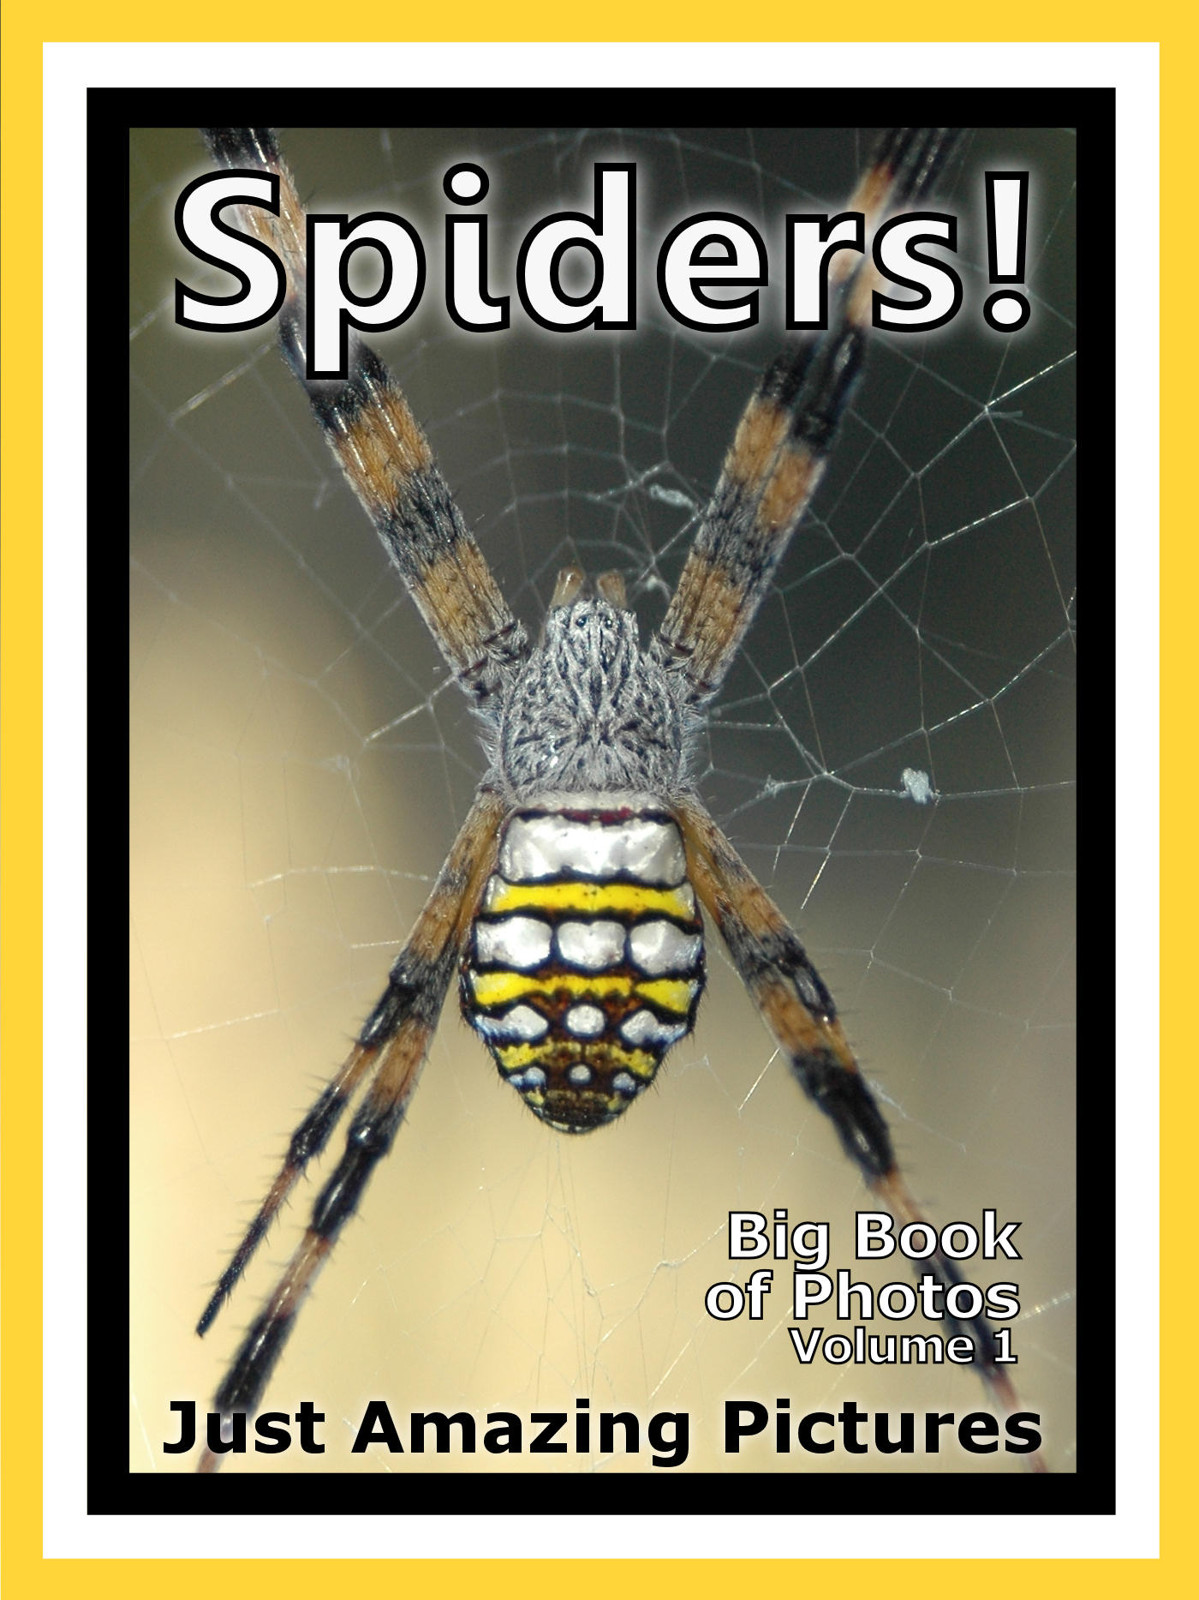 Just Spider Photos! Big Book of Photographs & Pictures of Spiders, Vol. 1